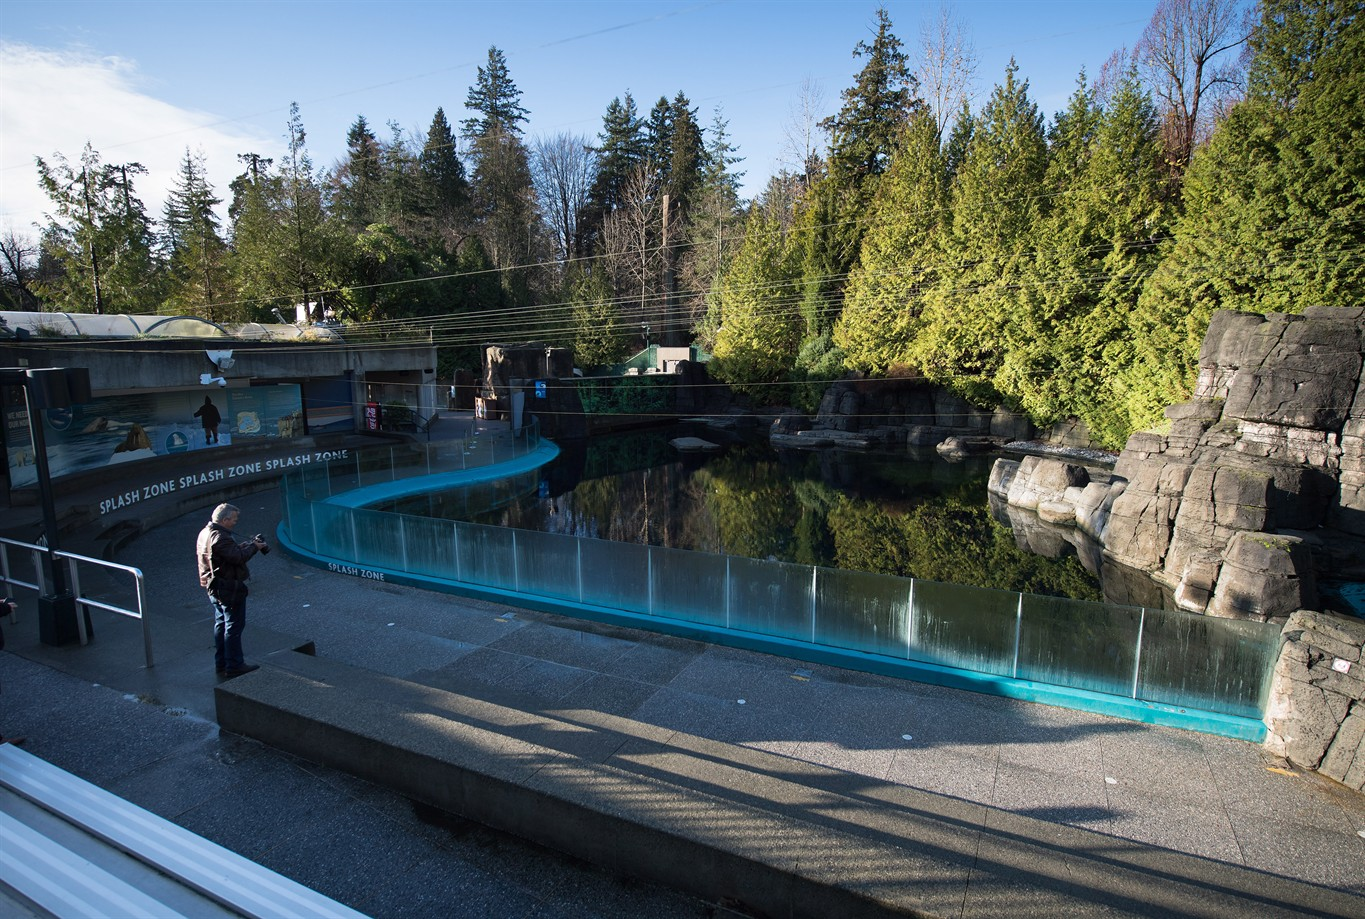 Fish aquarium vancouver - The Tank Where Beluga Whales Aurora And Qila Were Kept Is Seen At The Vancouver Aquarium In Vancouver B C On Monday November 28 2016